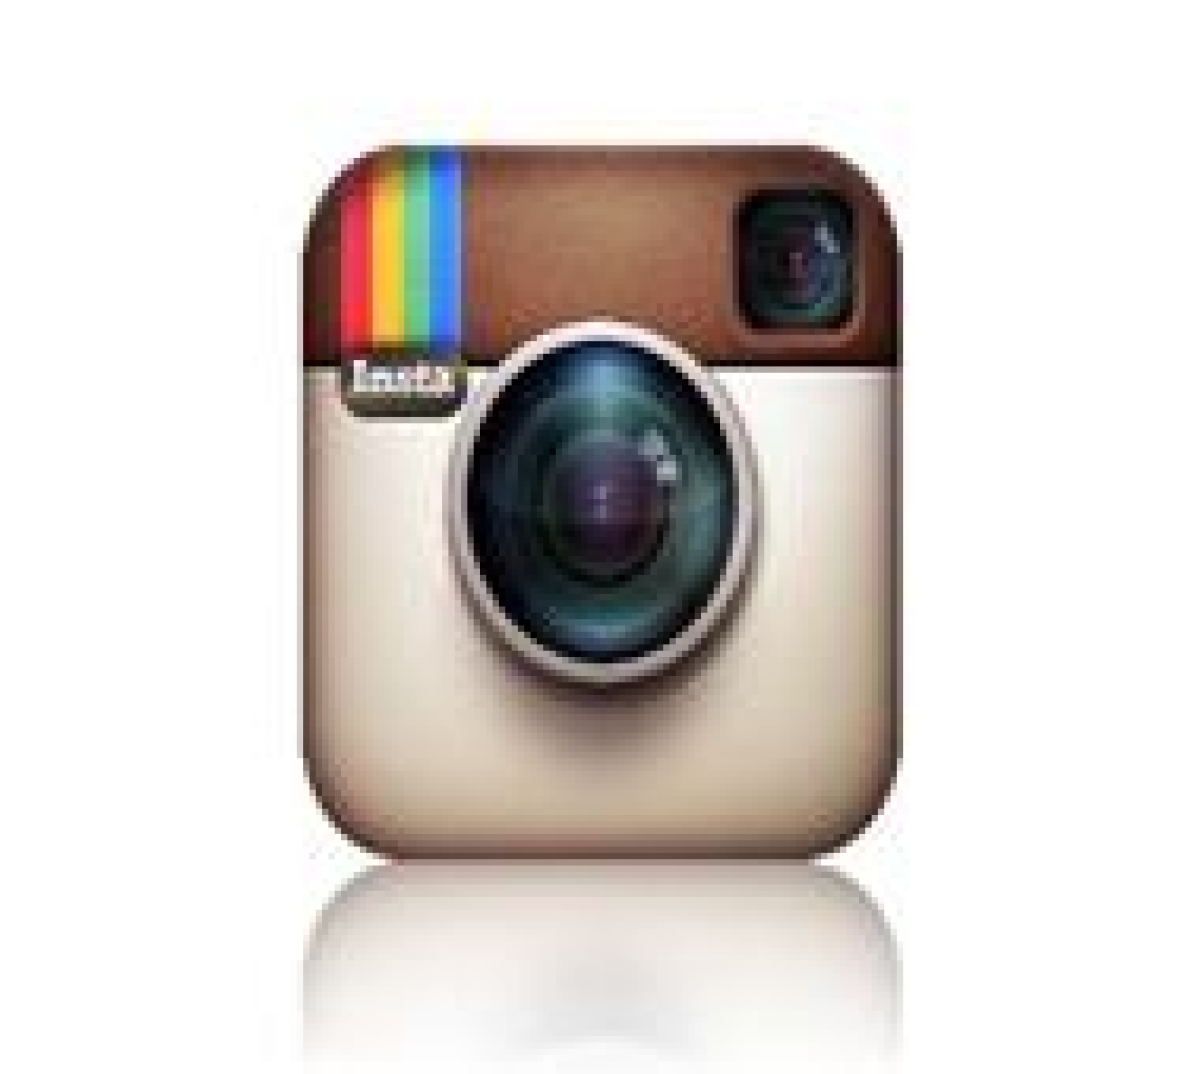 Share photos faster with this new iOS Instagram update